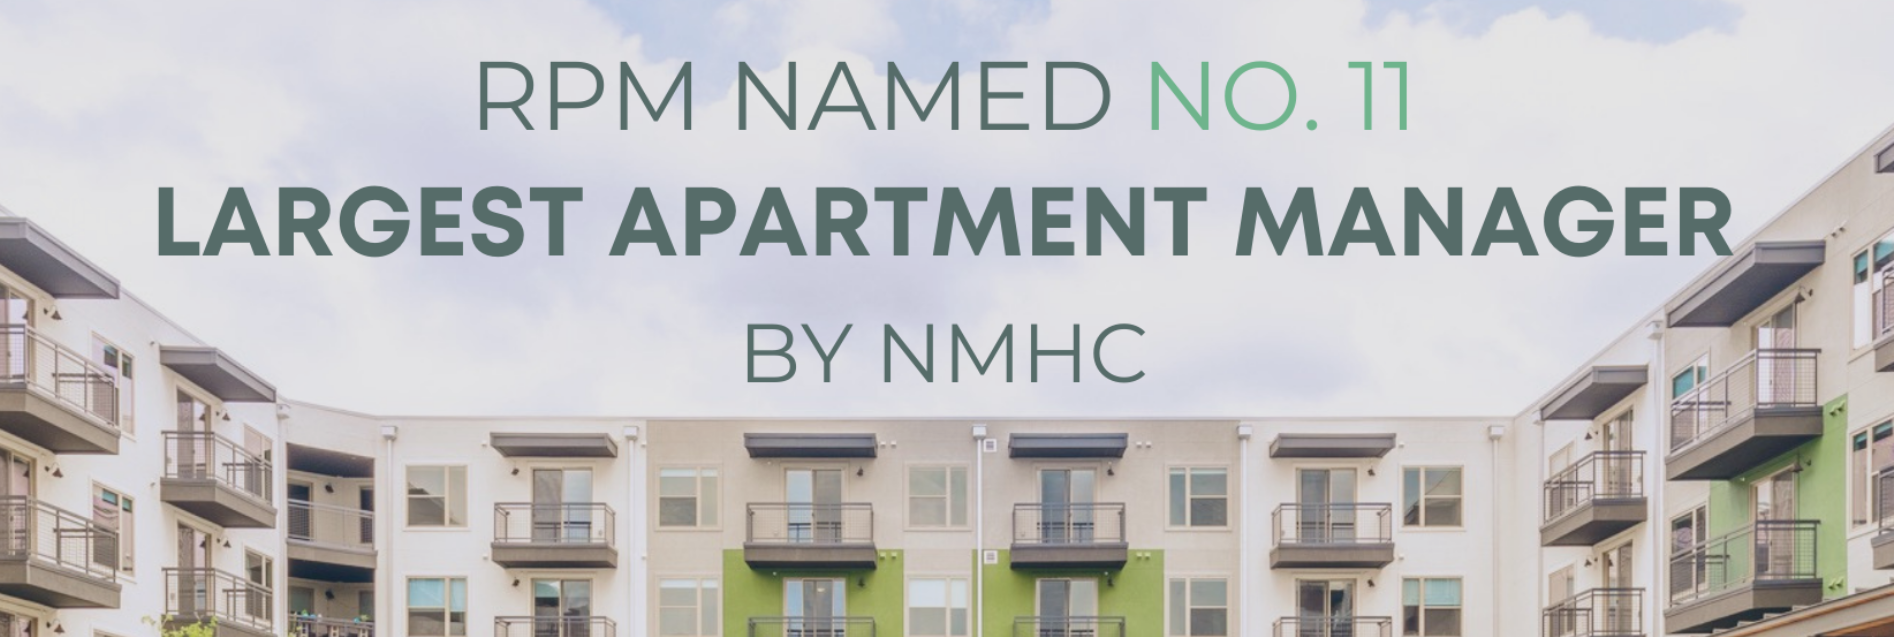 RPM Soars to Top 15 In National Multifamily Housing Council's List of Apartment Managers